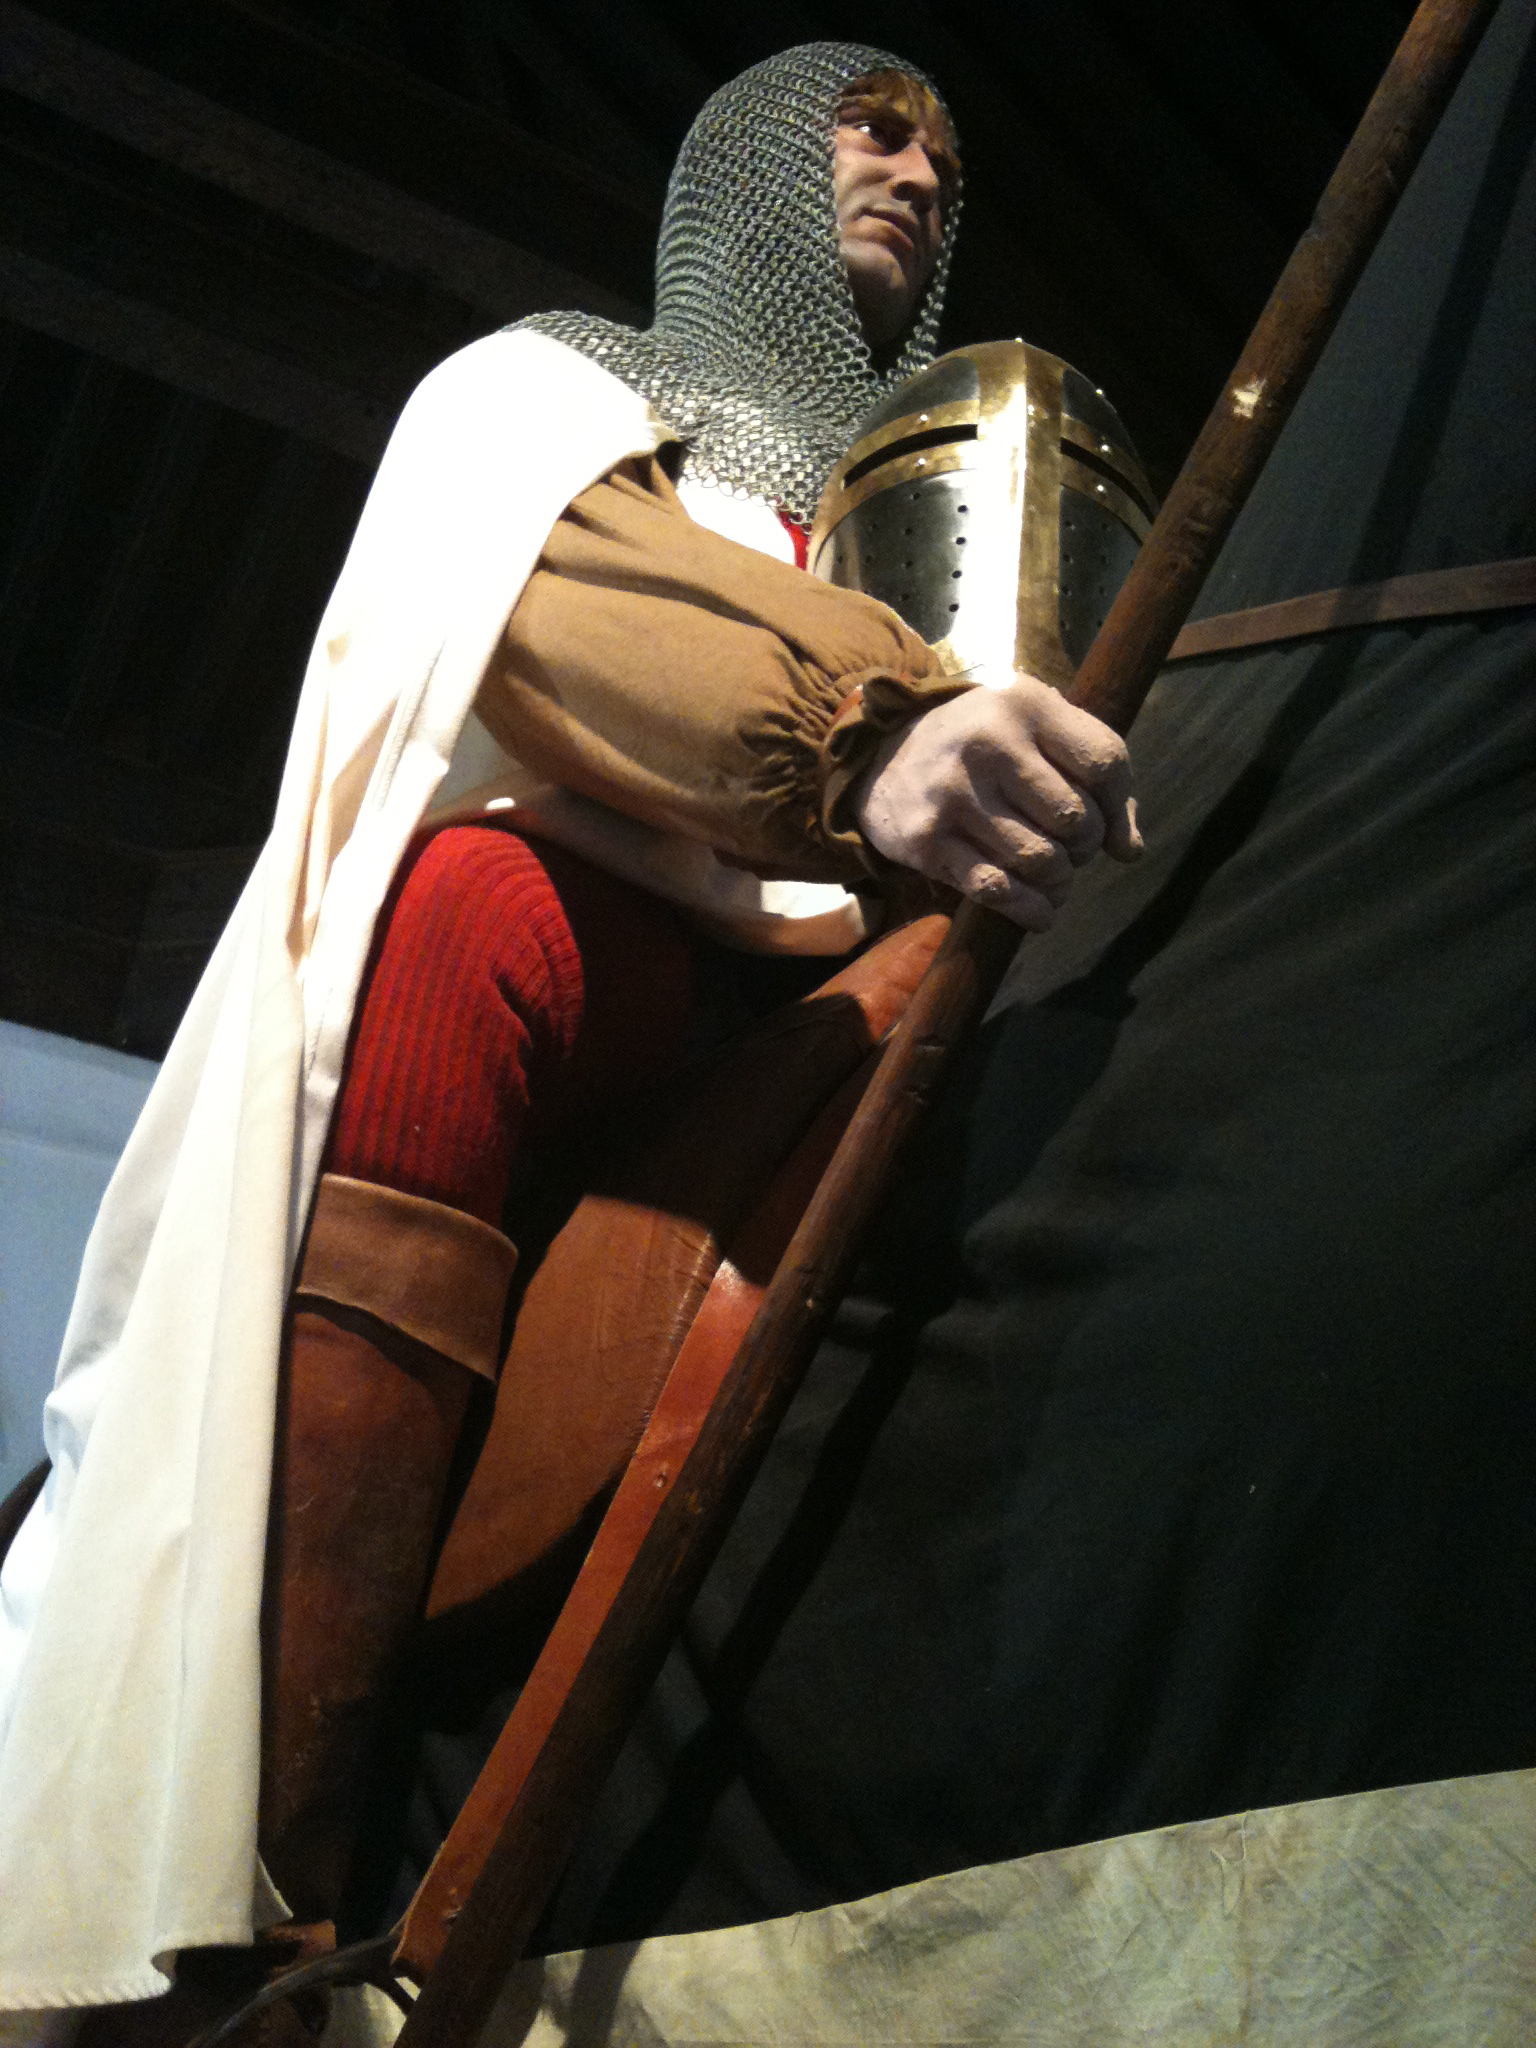 knights templar Ancient origins articles related to knights templar in the sections of history, archaeology, human origins, unexplained, artifacts, ancient places and myths and legends.